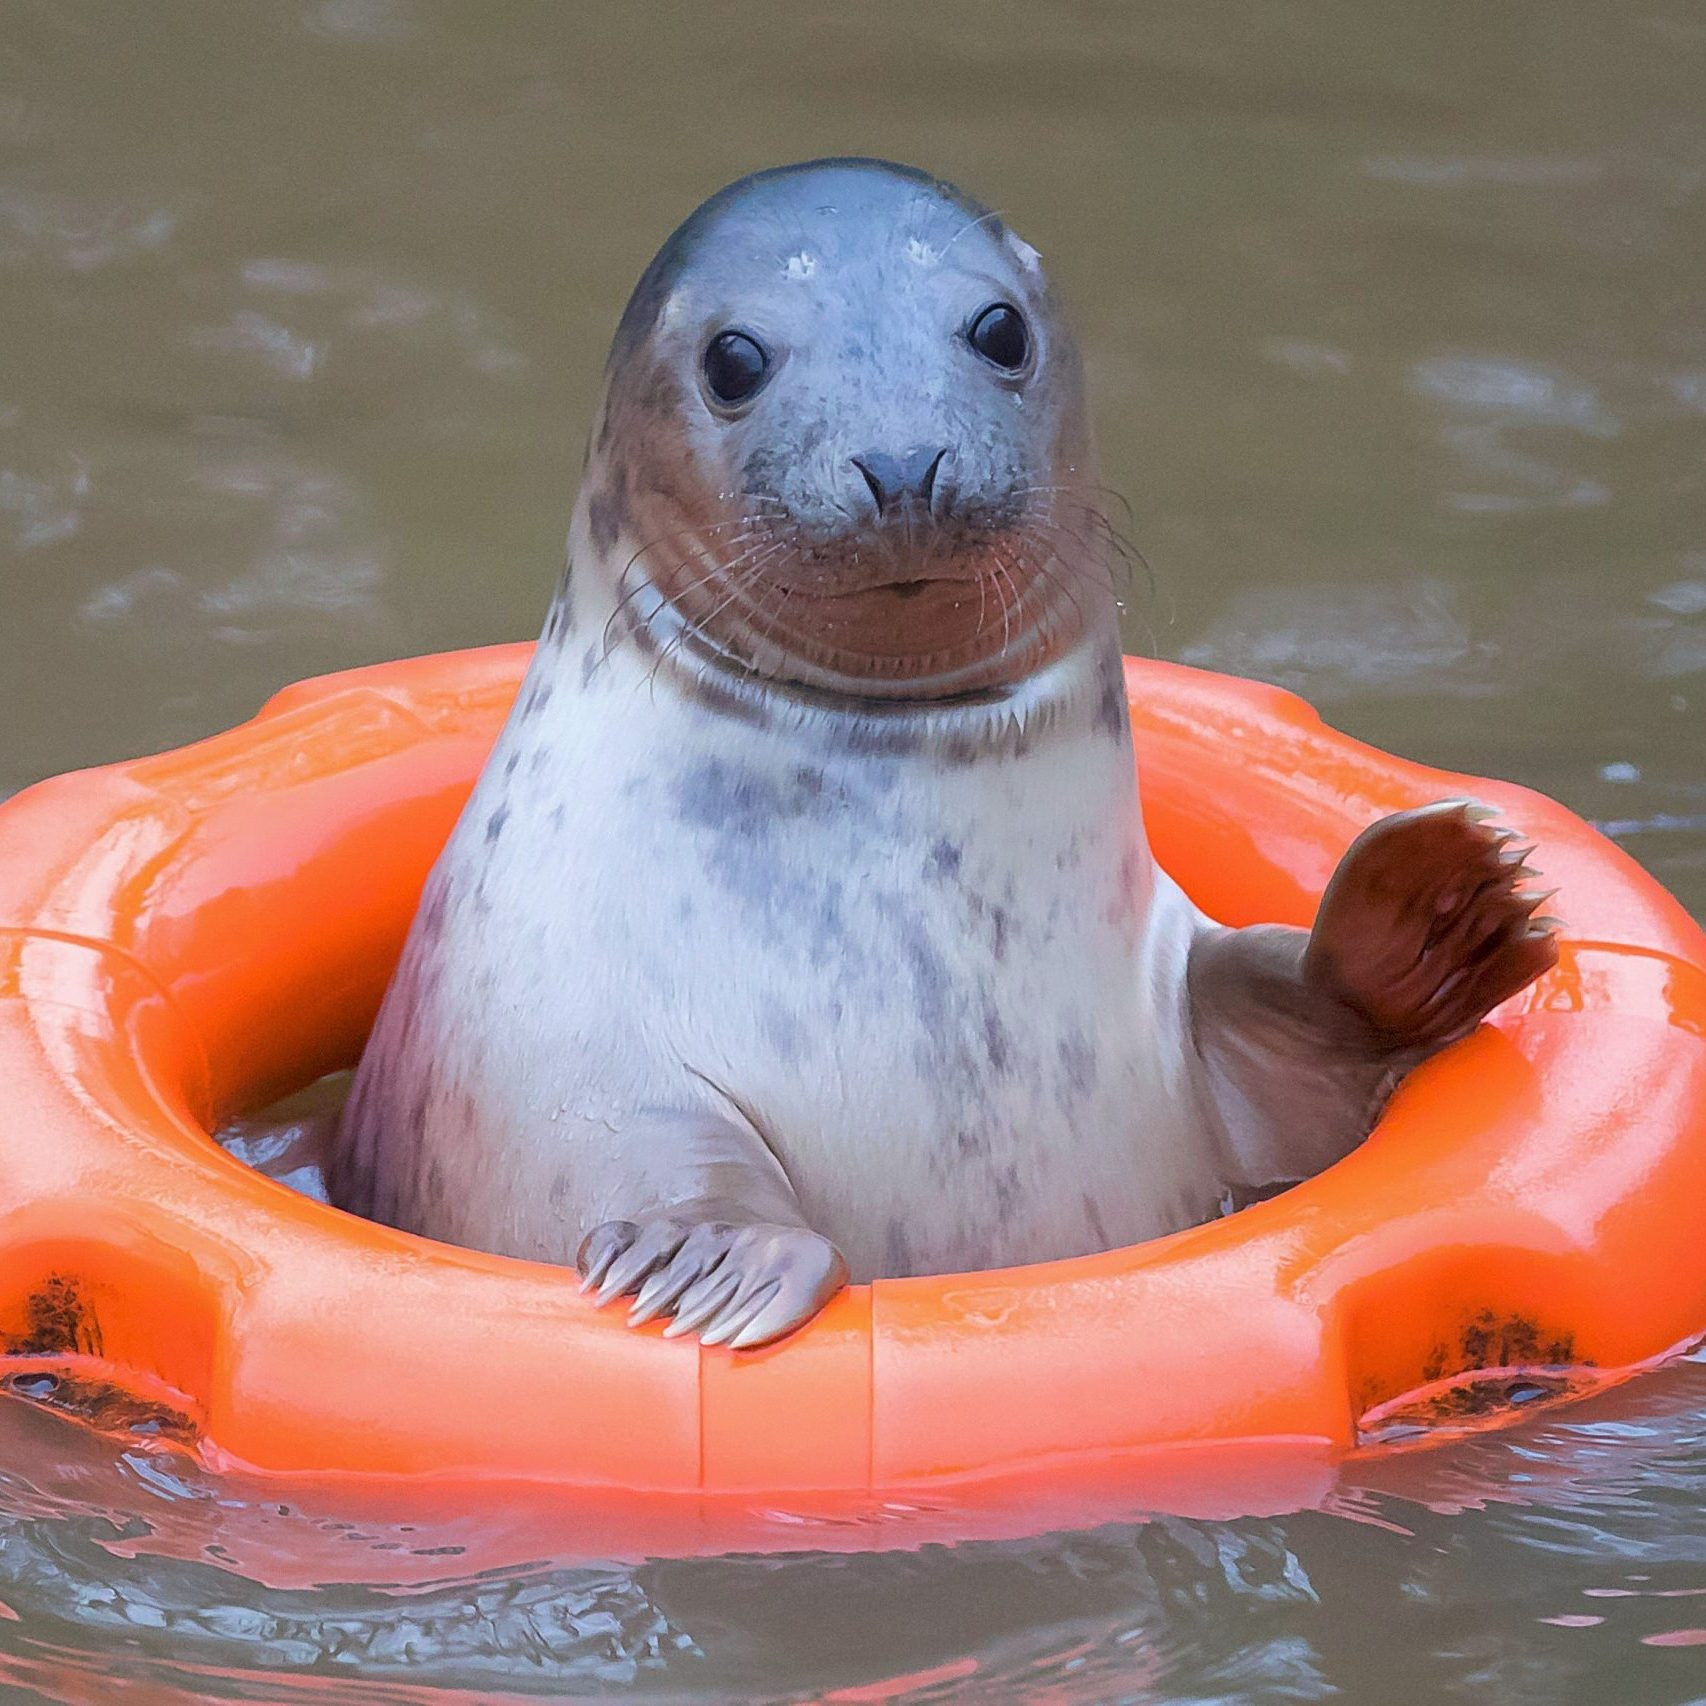 """17/12/2016. Pictured at Courtown Seal Rescue Center, Courtown, Co. Wexford. Pictured is """"Sally"""" the seal. Picture: Patrick Browne"""